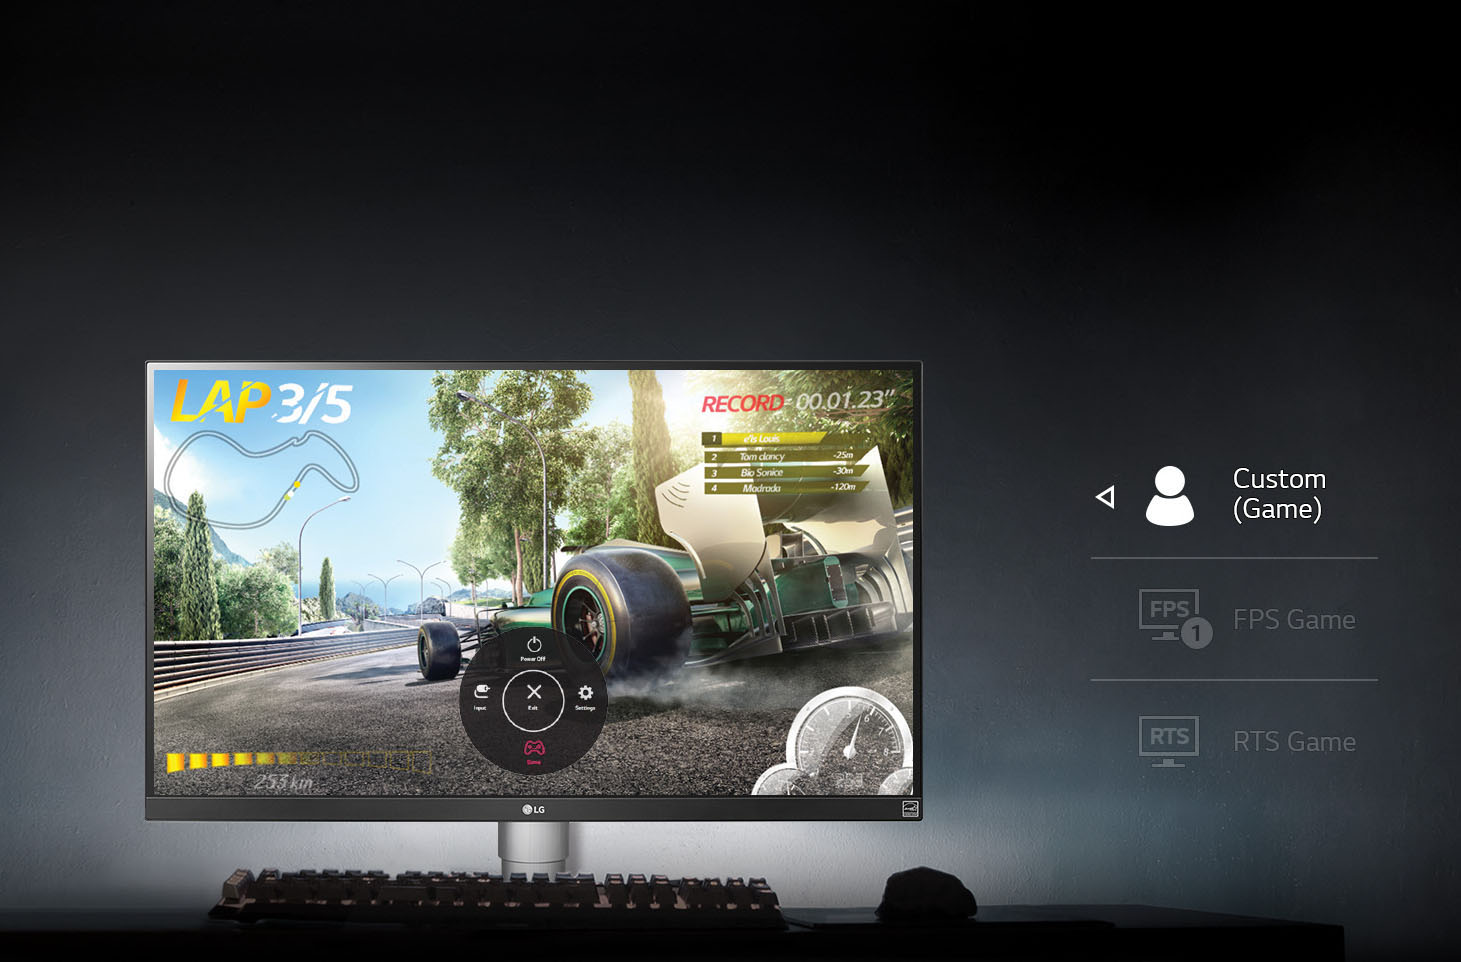 LG Monitor Showing a Racing Game on Screen